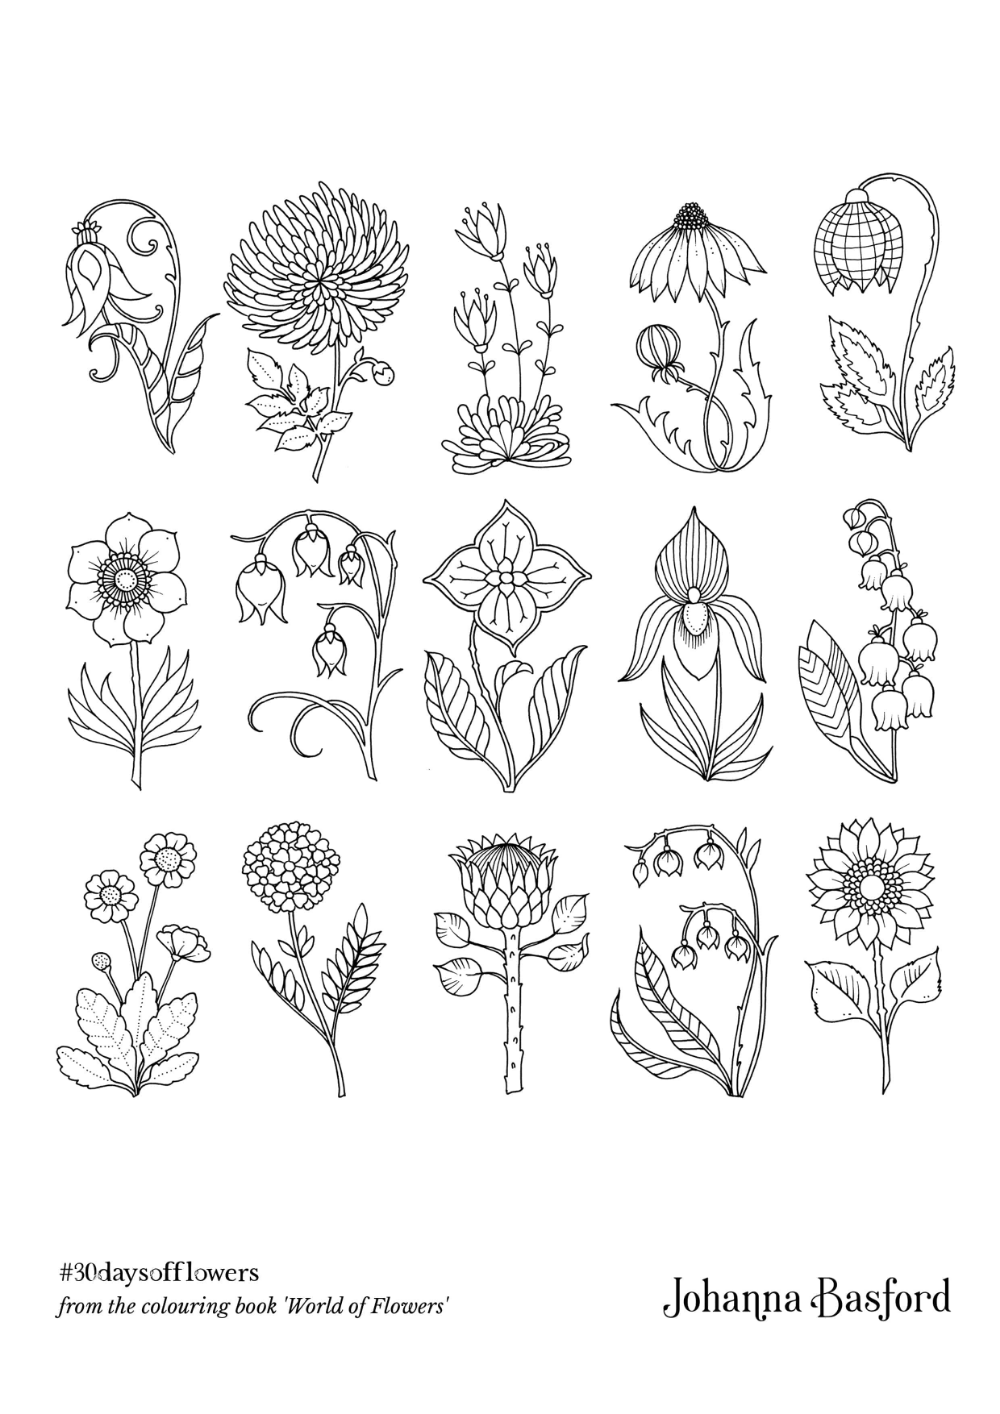 johanna basford flowers to colour in - Google Search